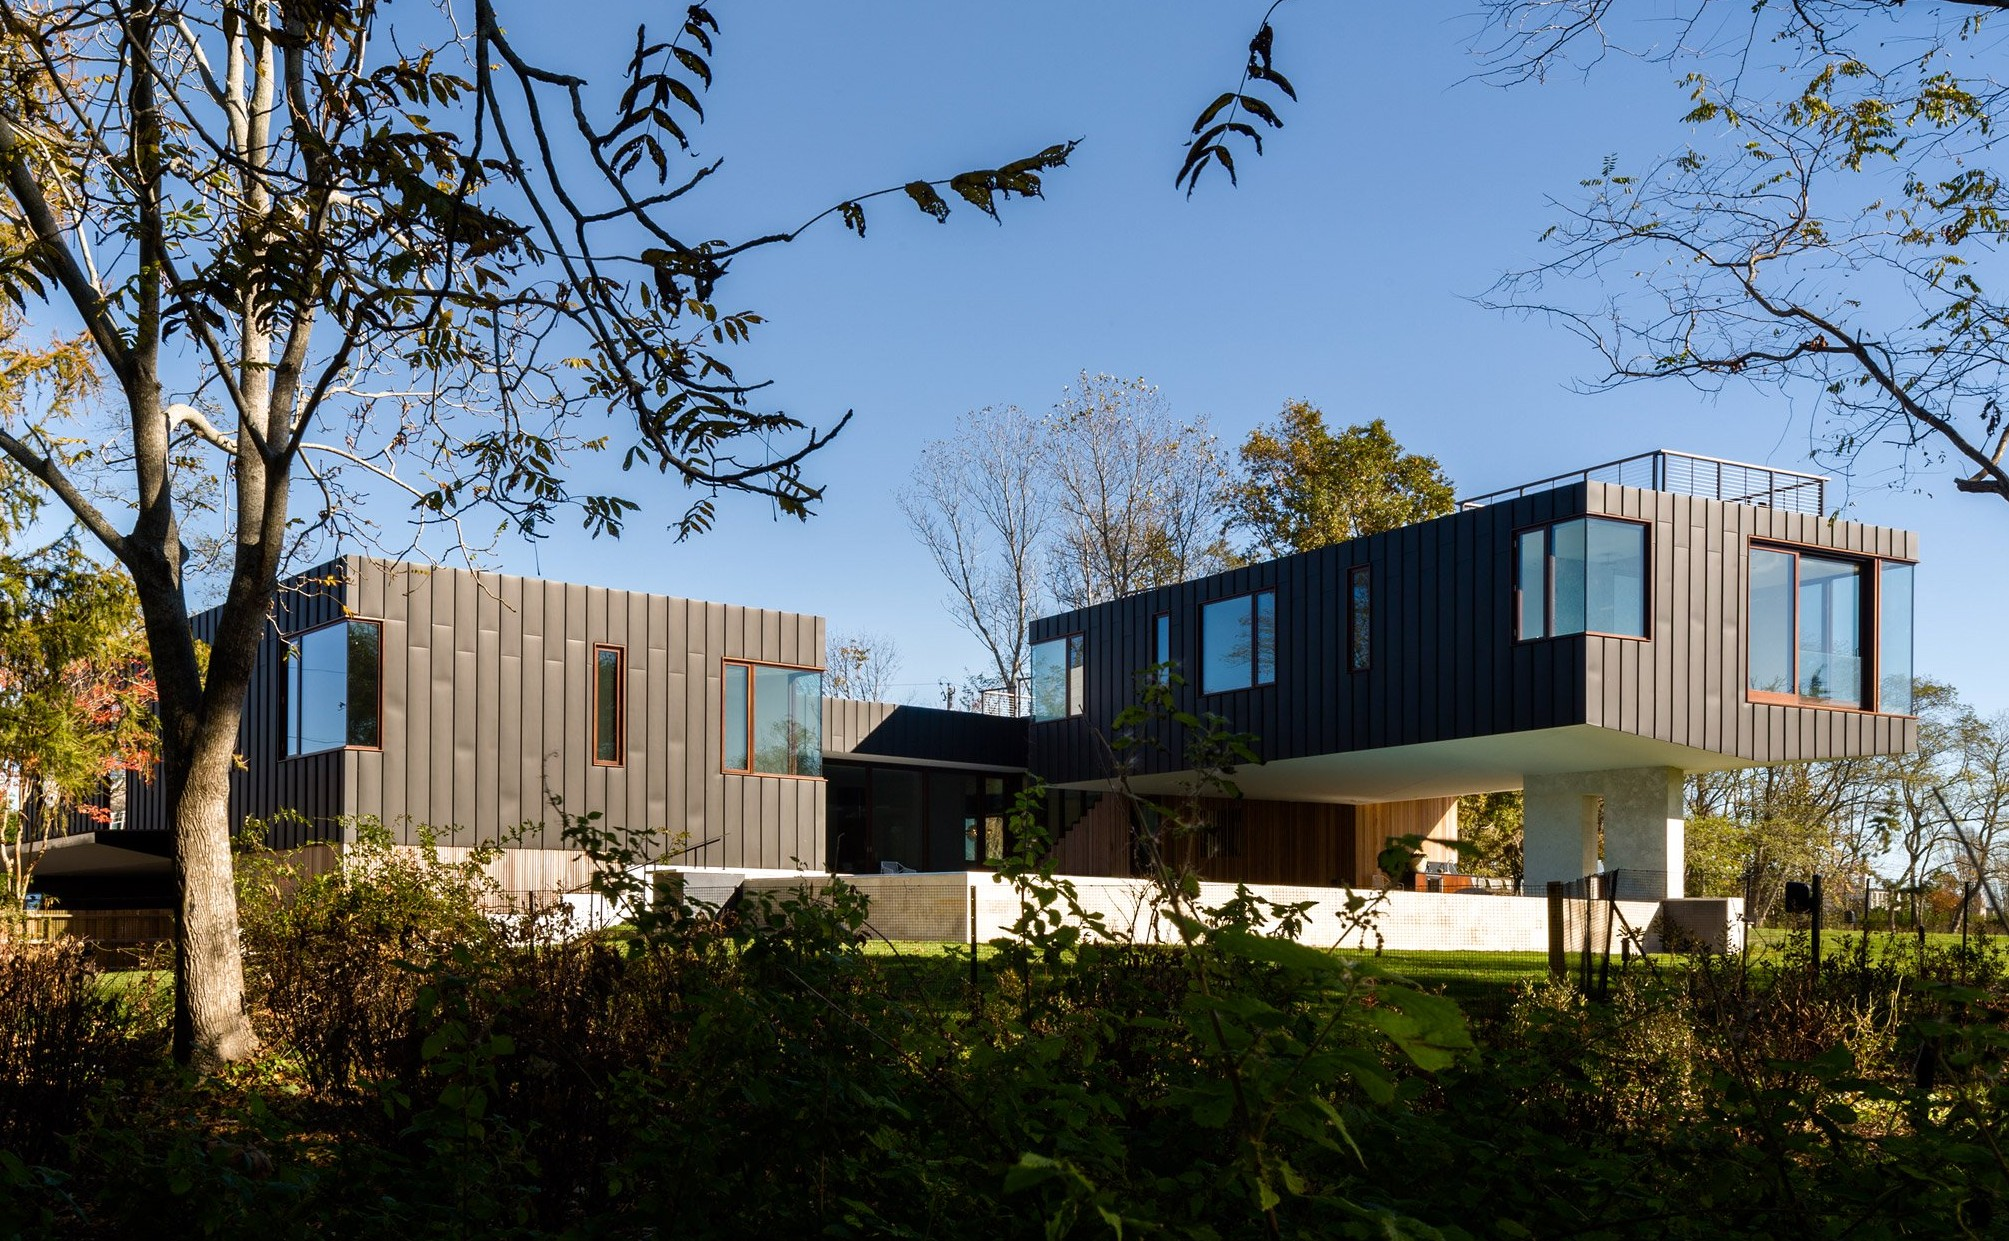 watermill-house-southamption-hamptons-long-island-new-york-usa-architecture-residence-home-elevated-floodplain-raised-zinc-office-of_dezeen_hero